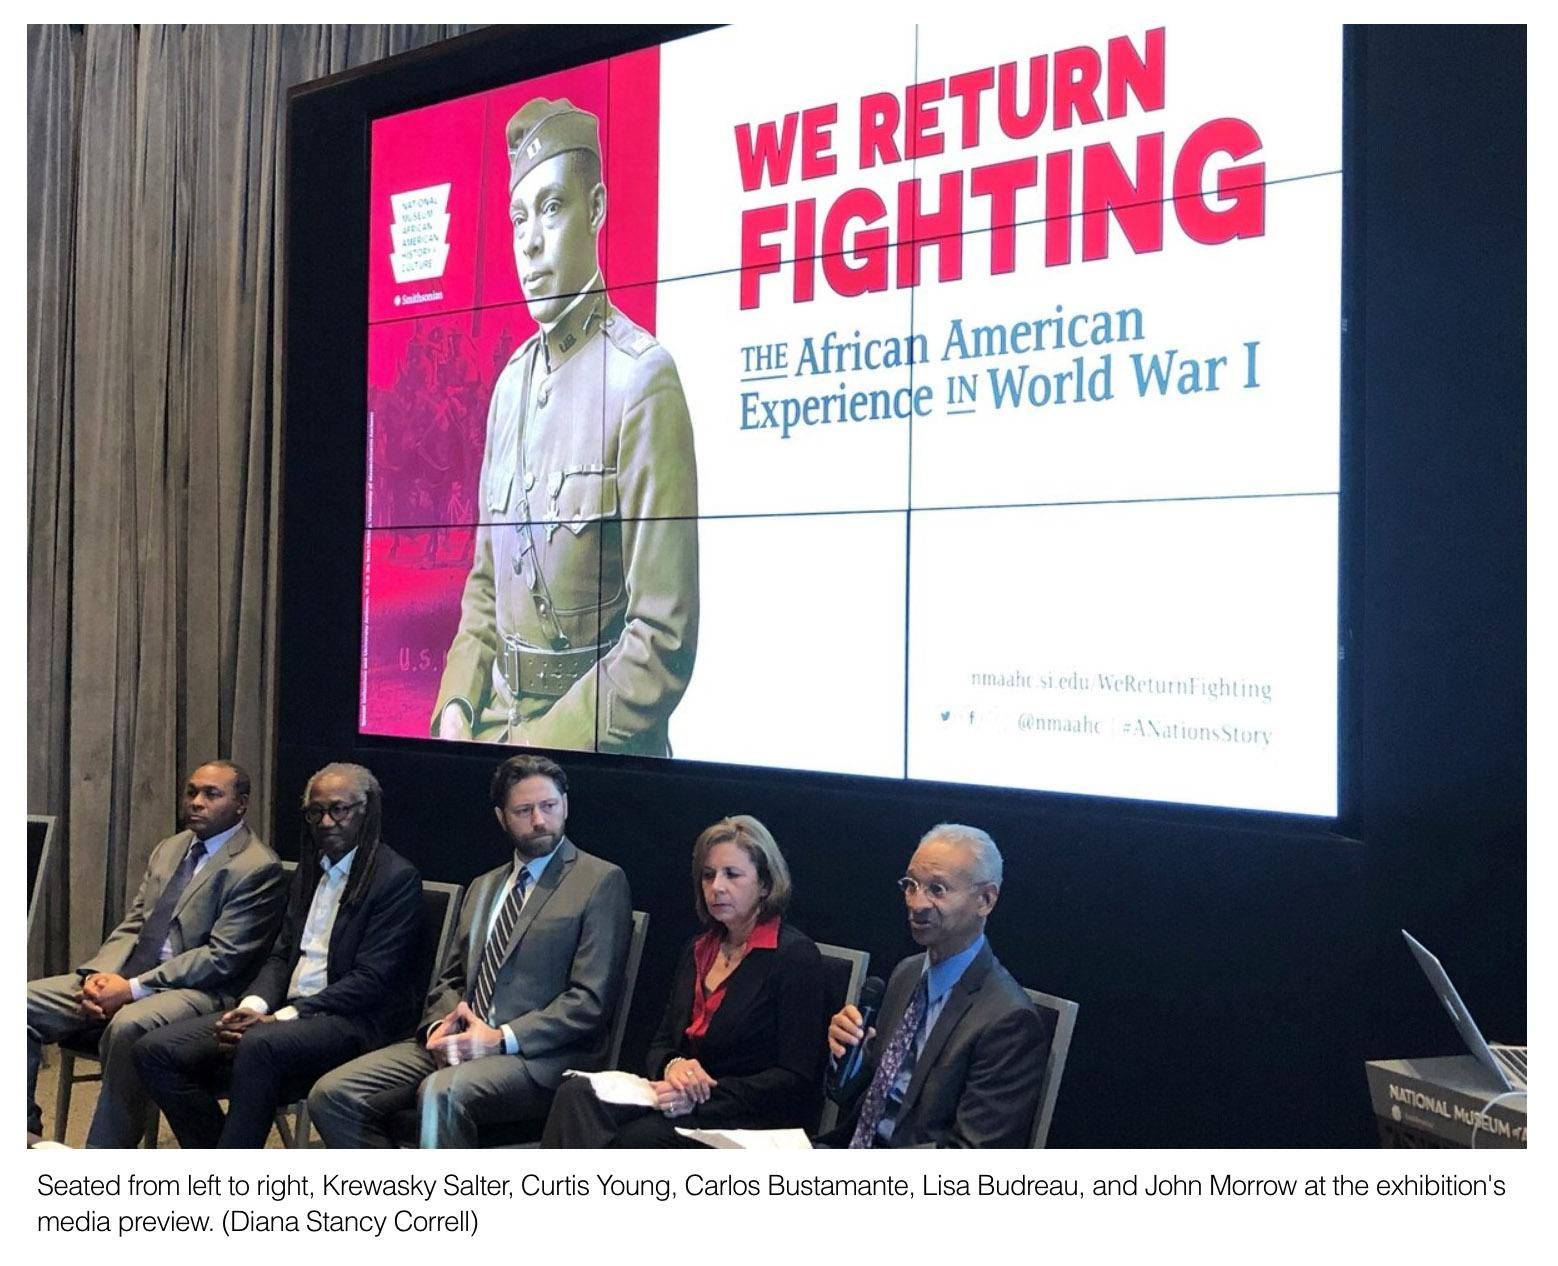 National Museum of African American History to display temporary exhibit on WWIs impact on African Americans